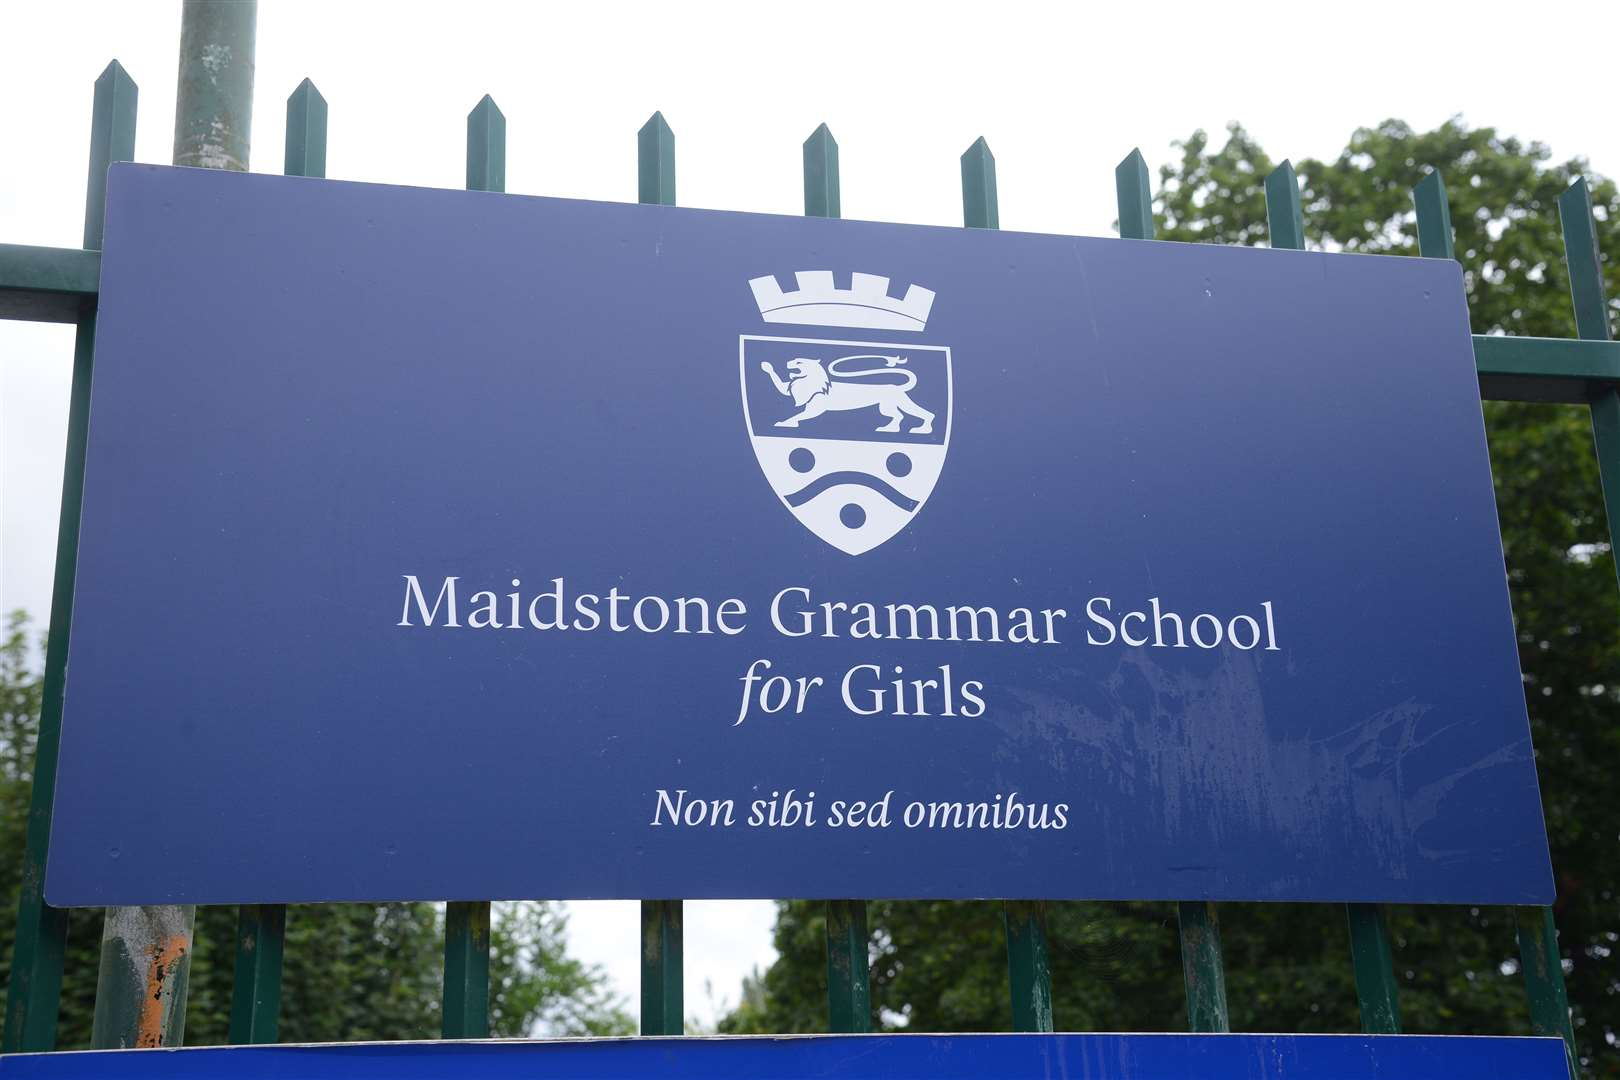 Maidstone Grammar School for Girls pupils had their prom cancelled